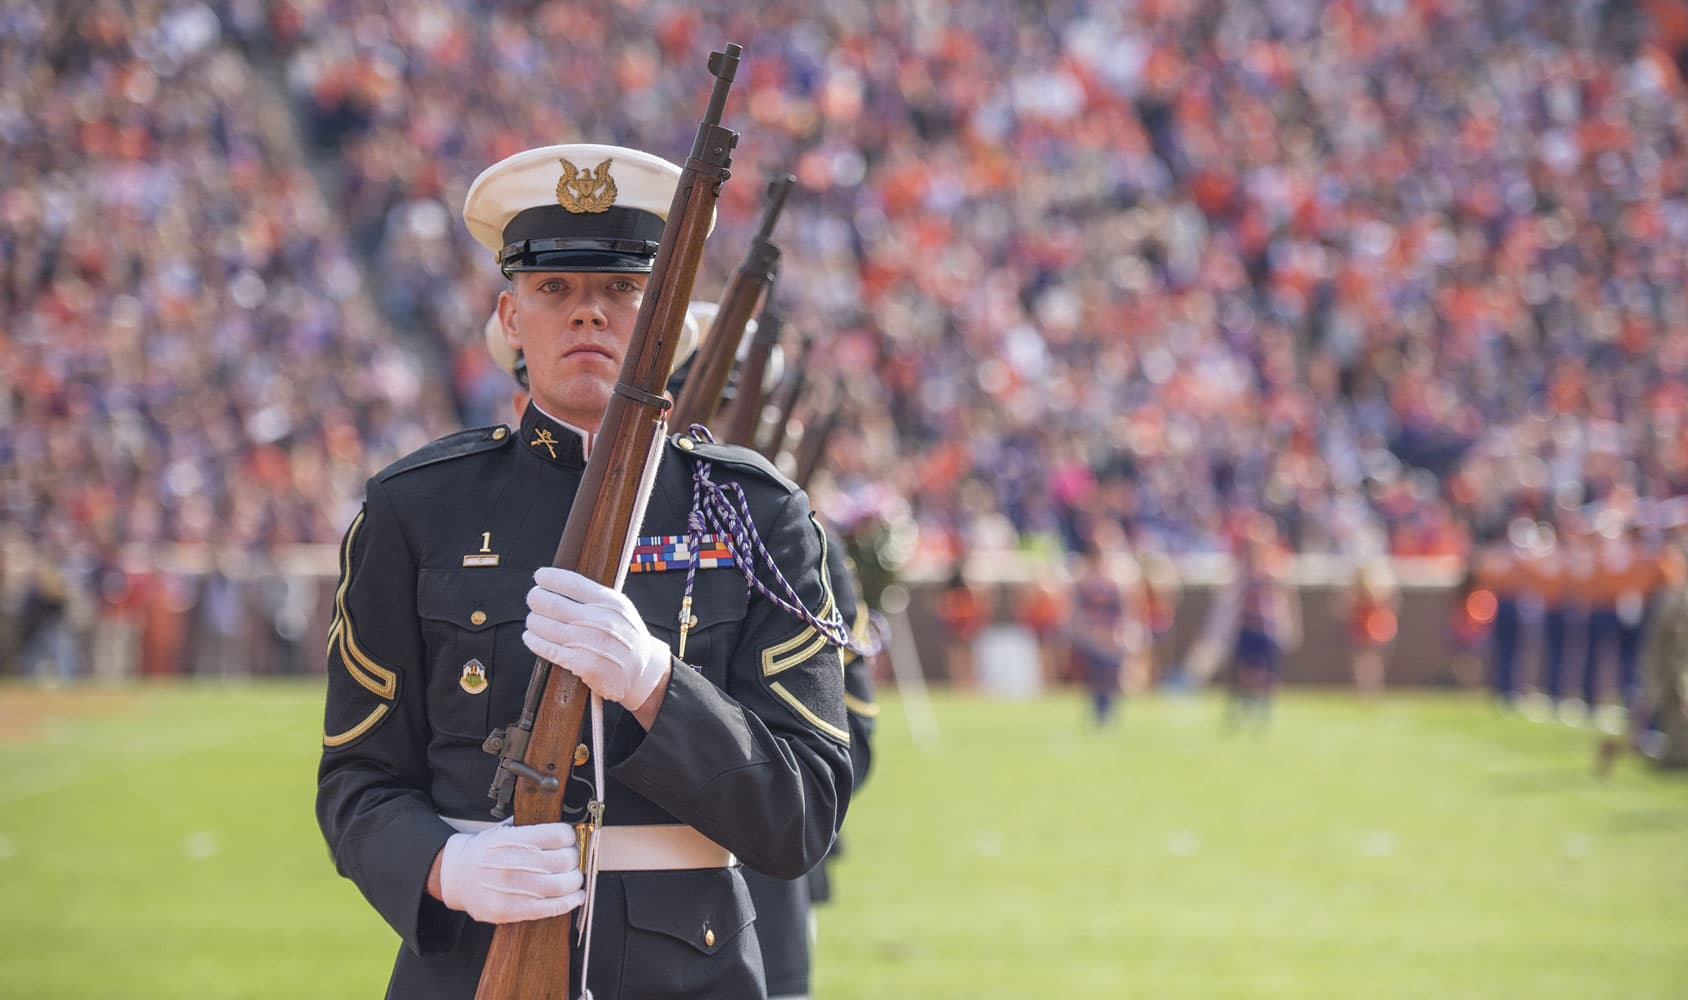 A member of the Clemson University Pershing Rifles honor guard leads his team off the field of Memorial Stadium after the half-time ceremony honoring the fallen during the 2017 Military Appreciation Game.